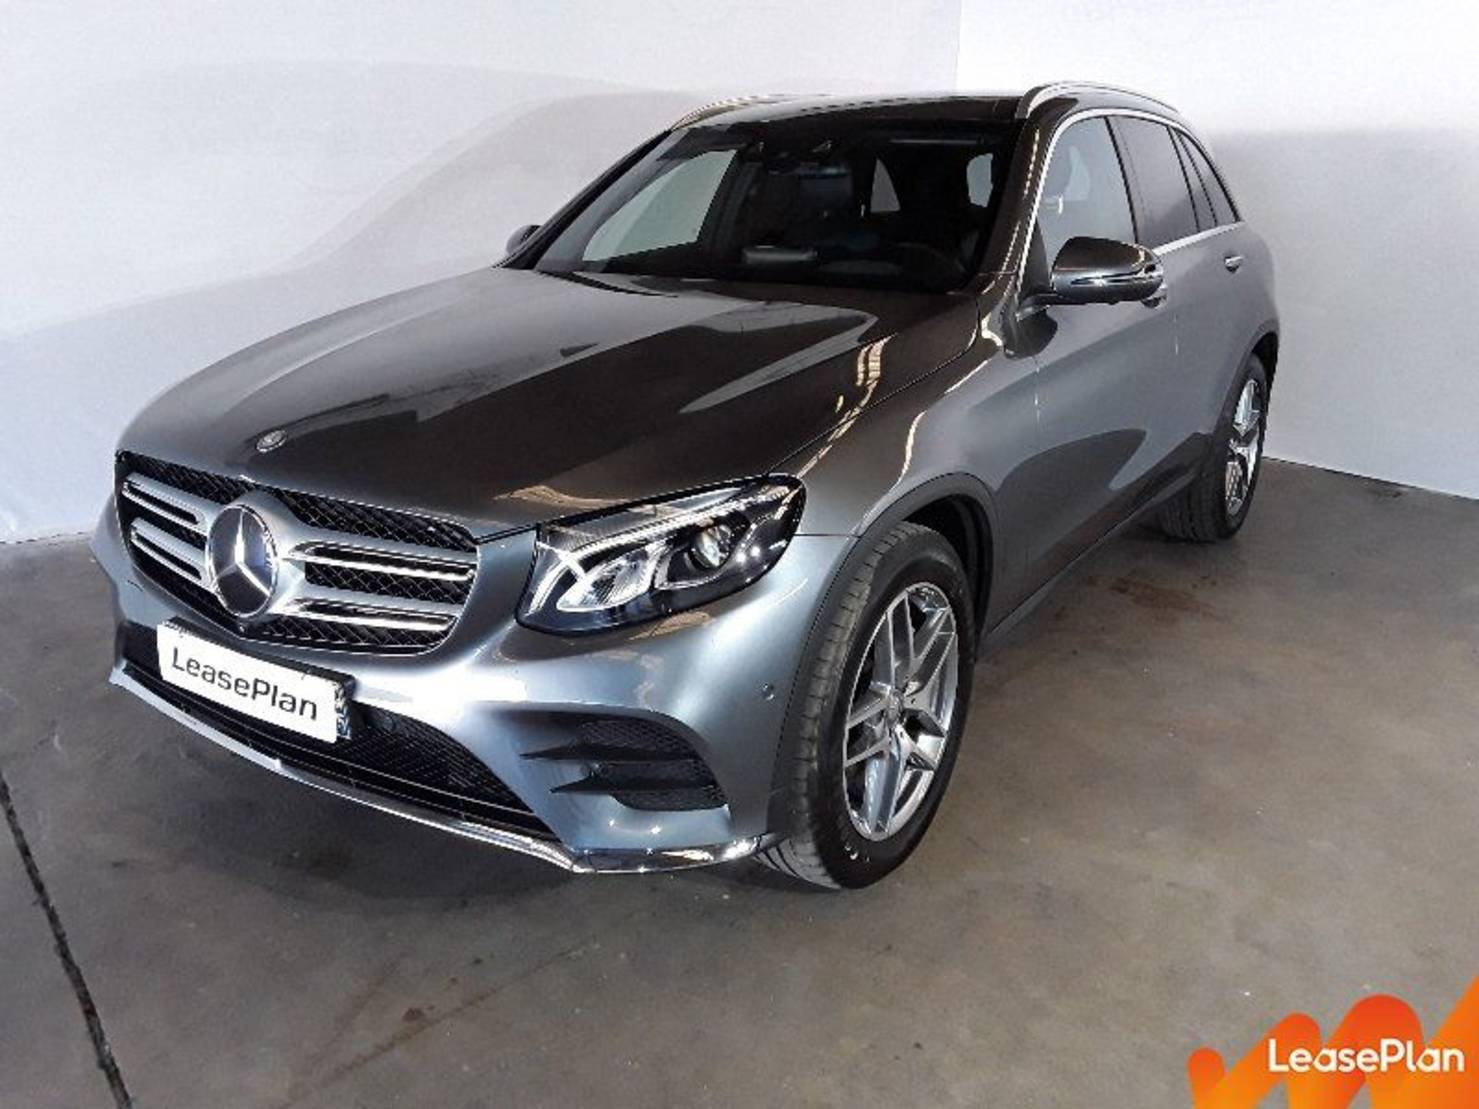 Mercedes-Benz GLC-Klasse 250 d 9G-Tronic 4Matic, Fascination detail1